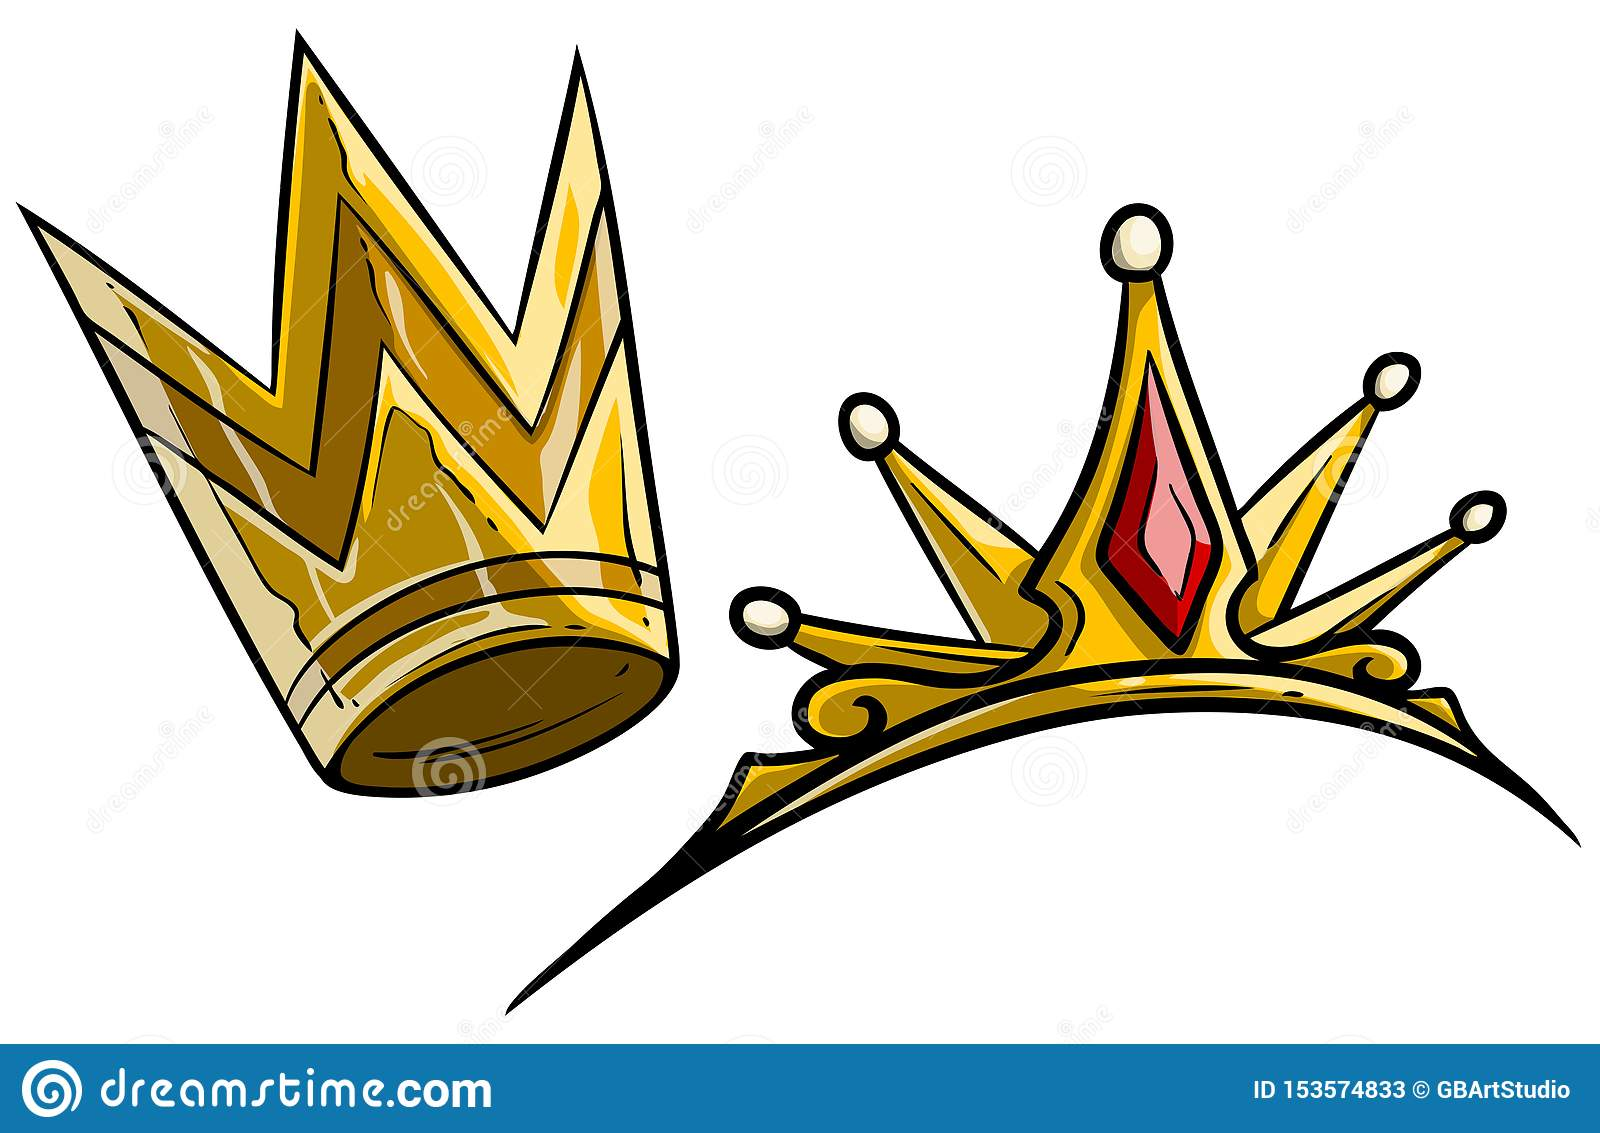 Cartoon Golden Royal Queen Crown Vector Stock Vector Illustration Of Emperor Monarchy 153574833 Its painted with golden dye, patterns are painted with green and purple dyes. https www dreamstime com cartoon golden royal queen crown vector diamonds gems isolated white background icon image153574833